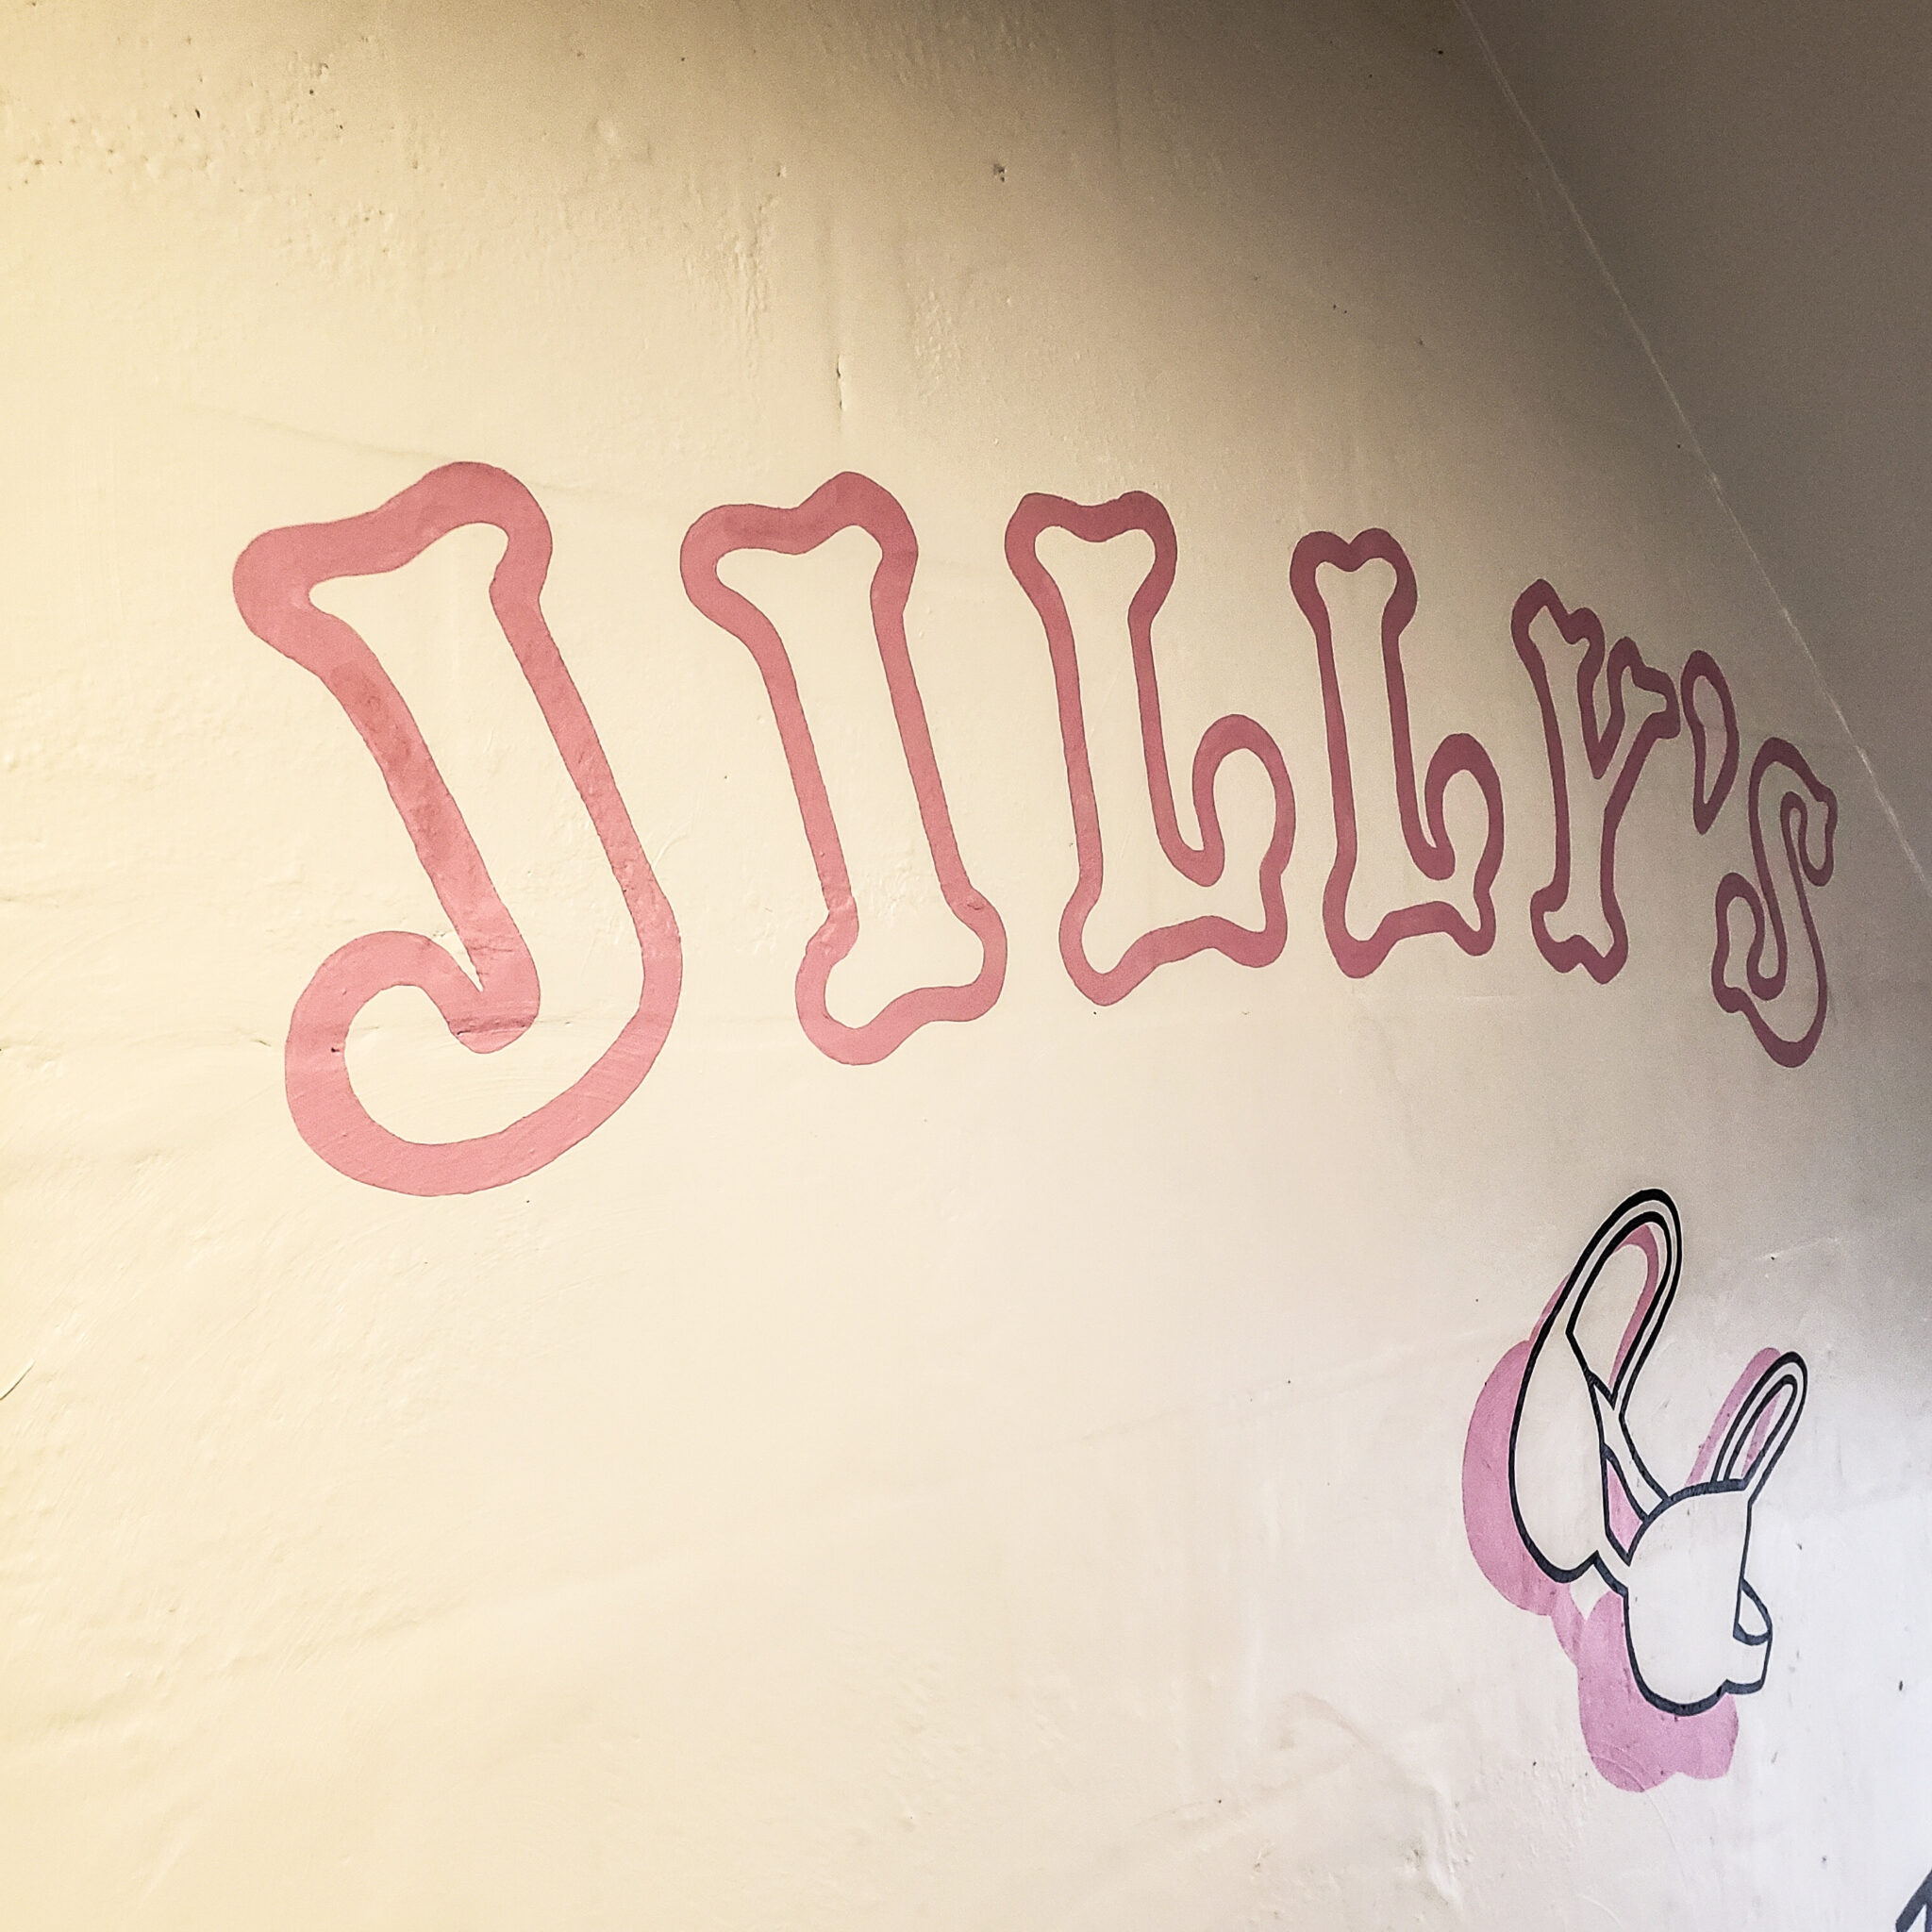 The Broadview Hotel - Broadview Hotel - Queen East - Toronto East - Toronto Life - Boutique Hotel - Jillys Artwork in Stairwell